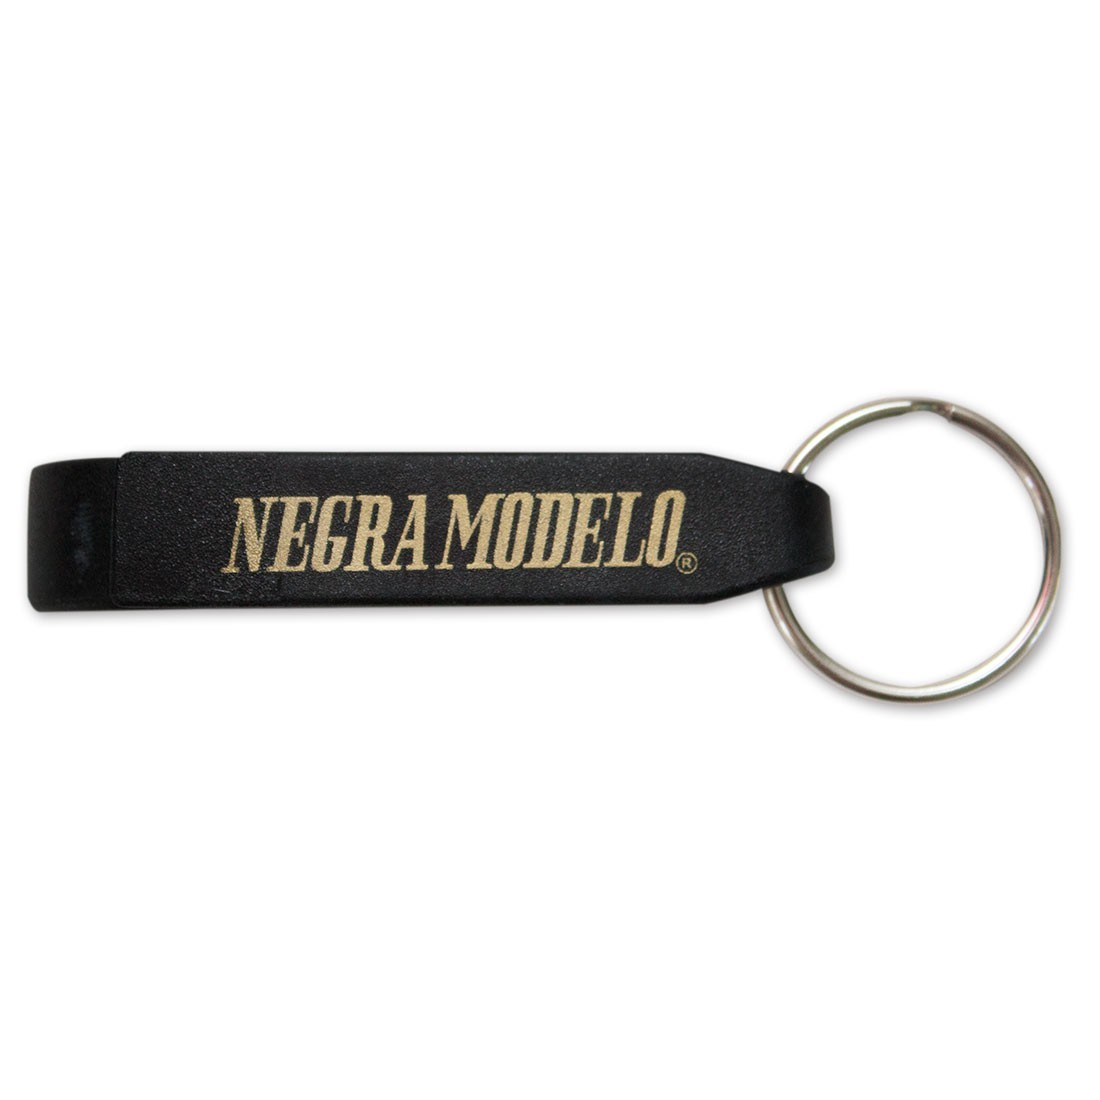 Negra Modelo Black Keychain Beverage Wrench